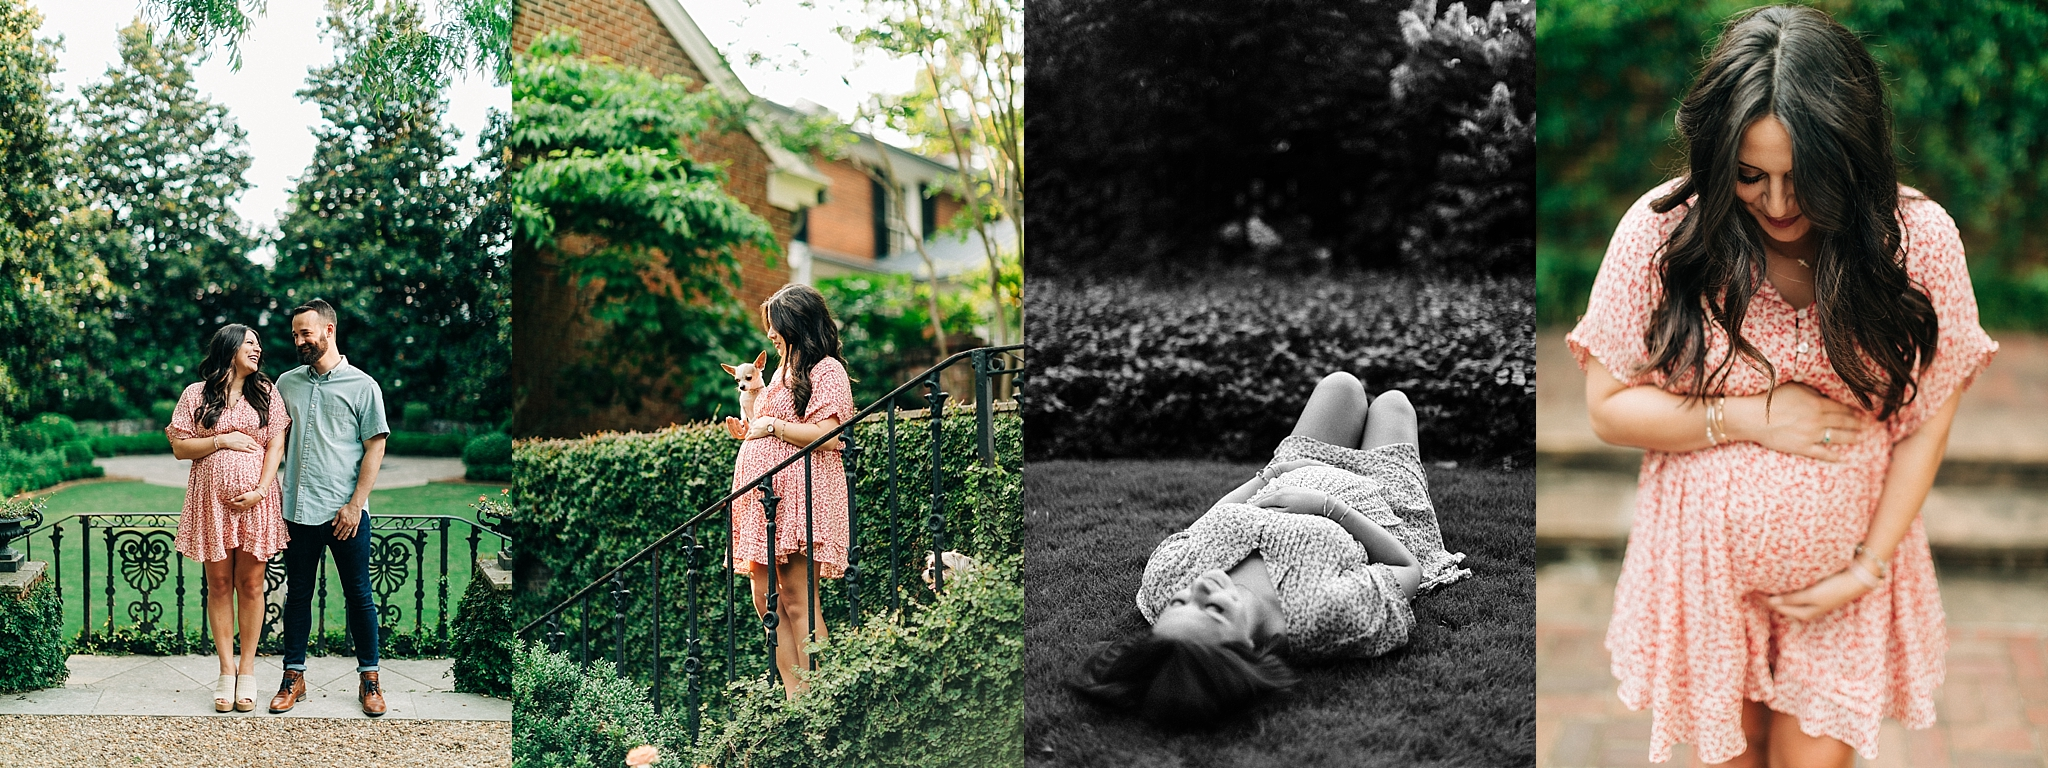 athens-ga-maternity-shoot